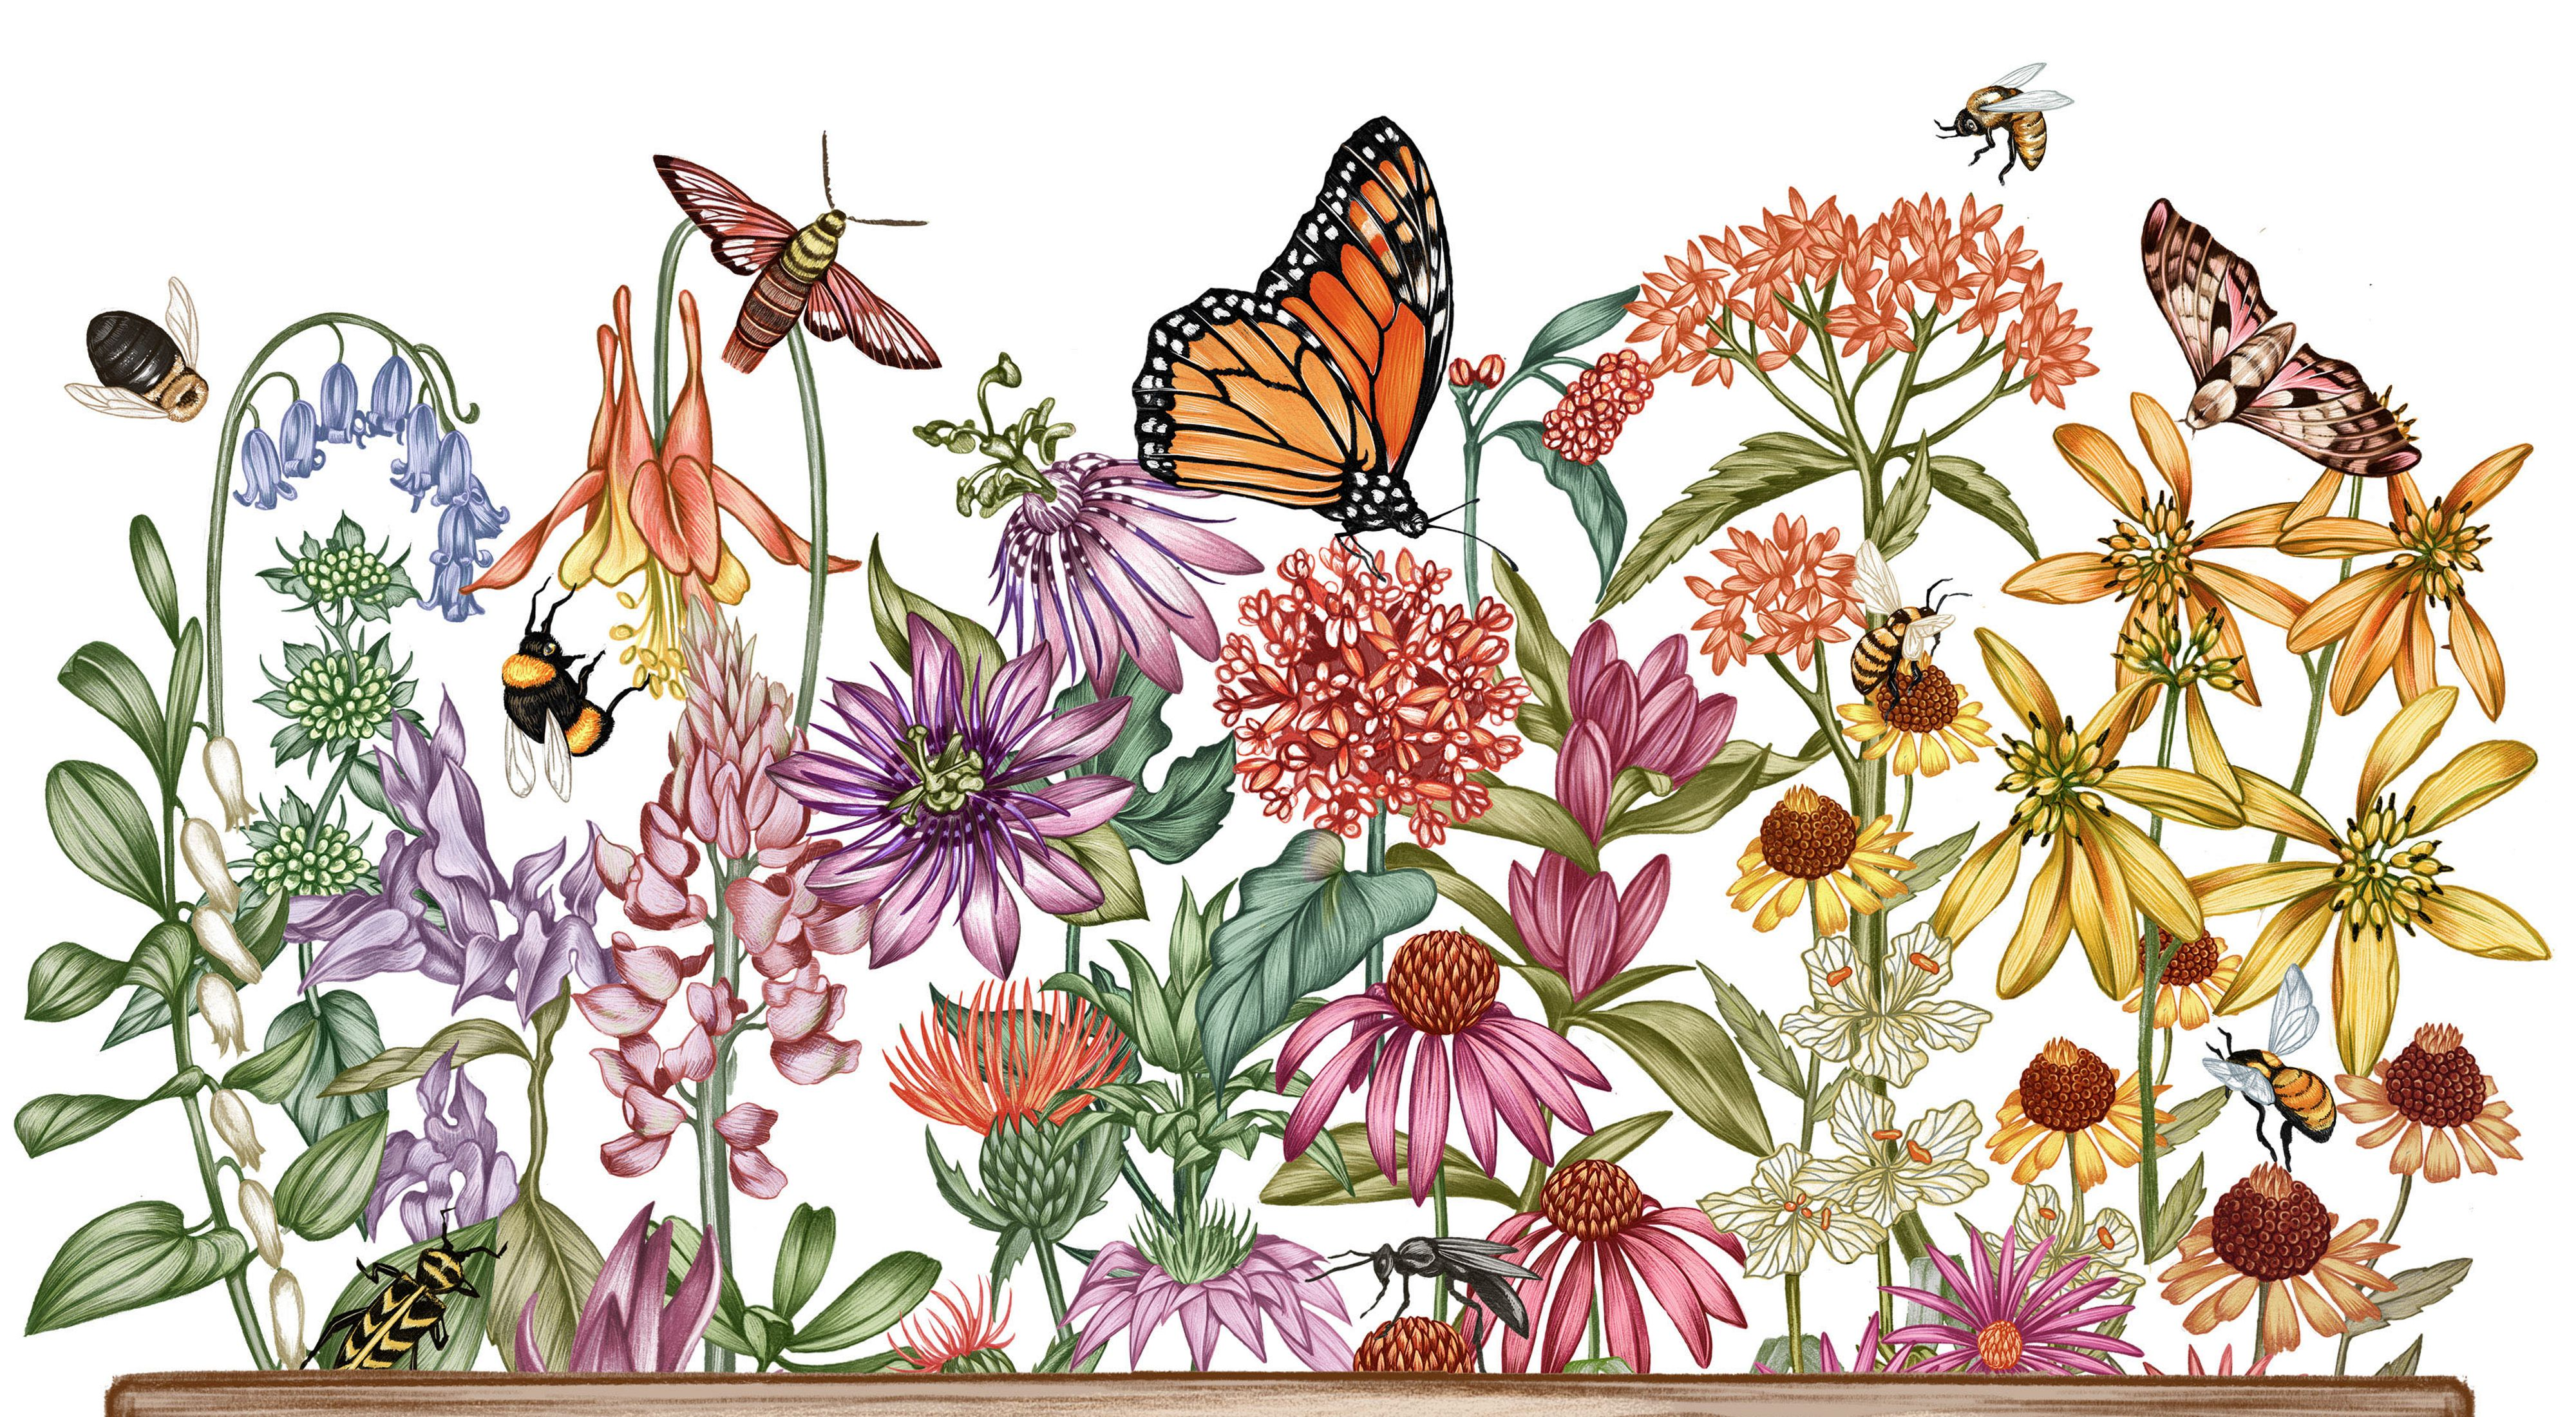 CANCELLED: Attract Pollinators To Your Garden